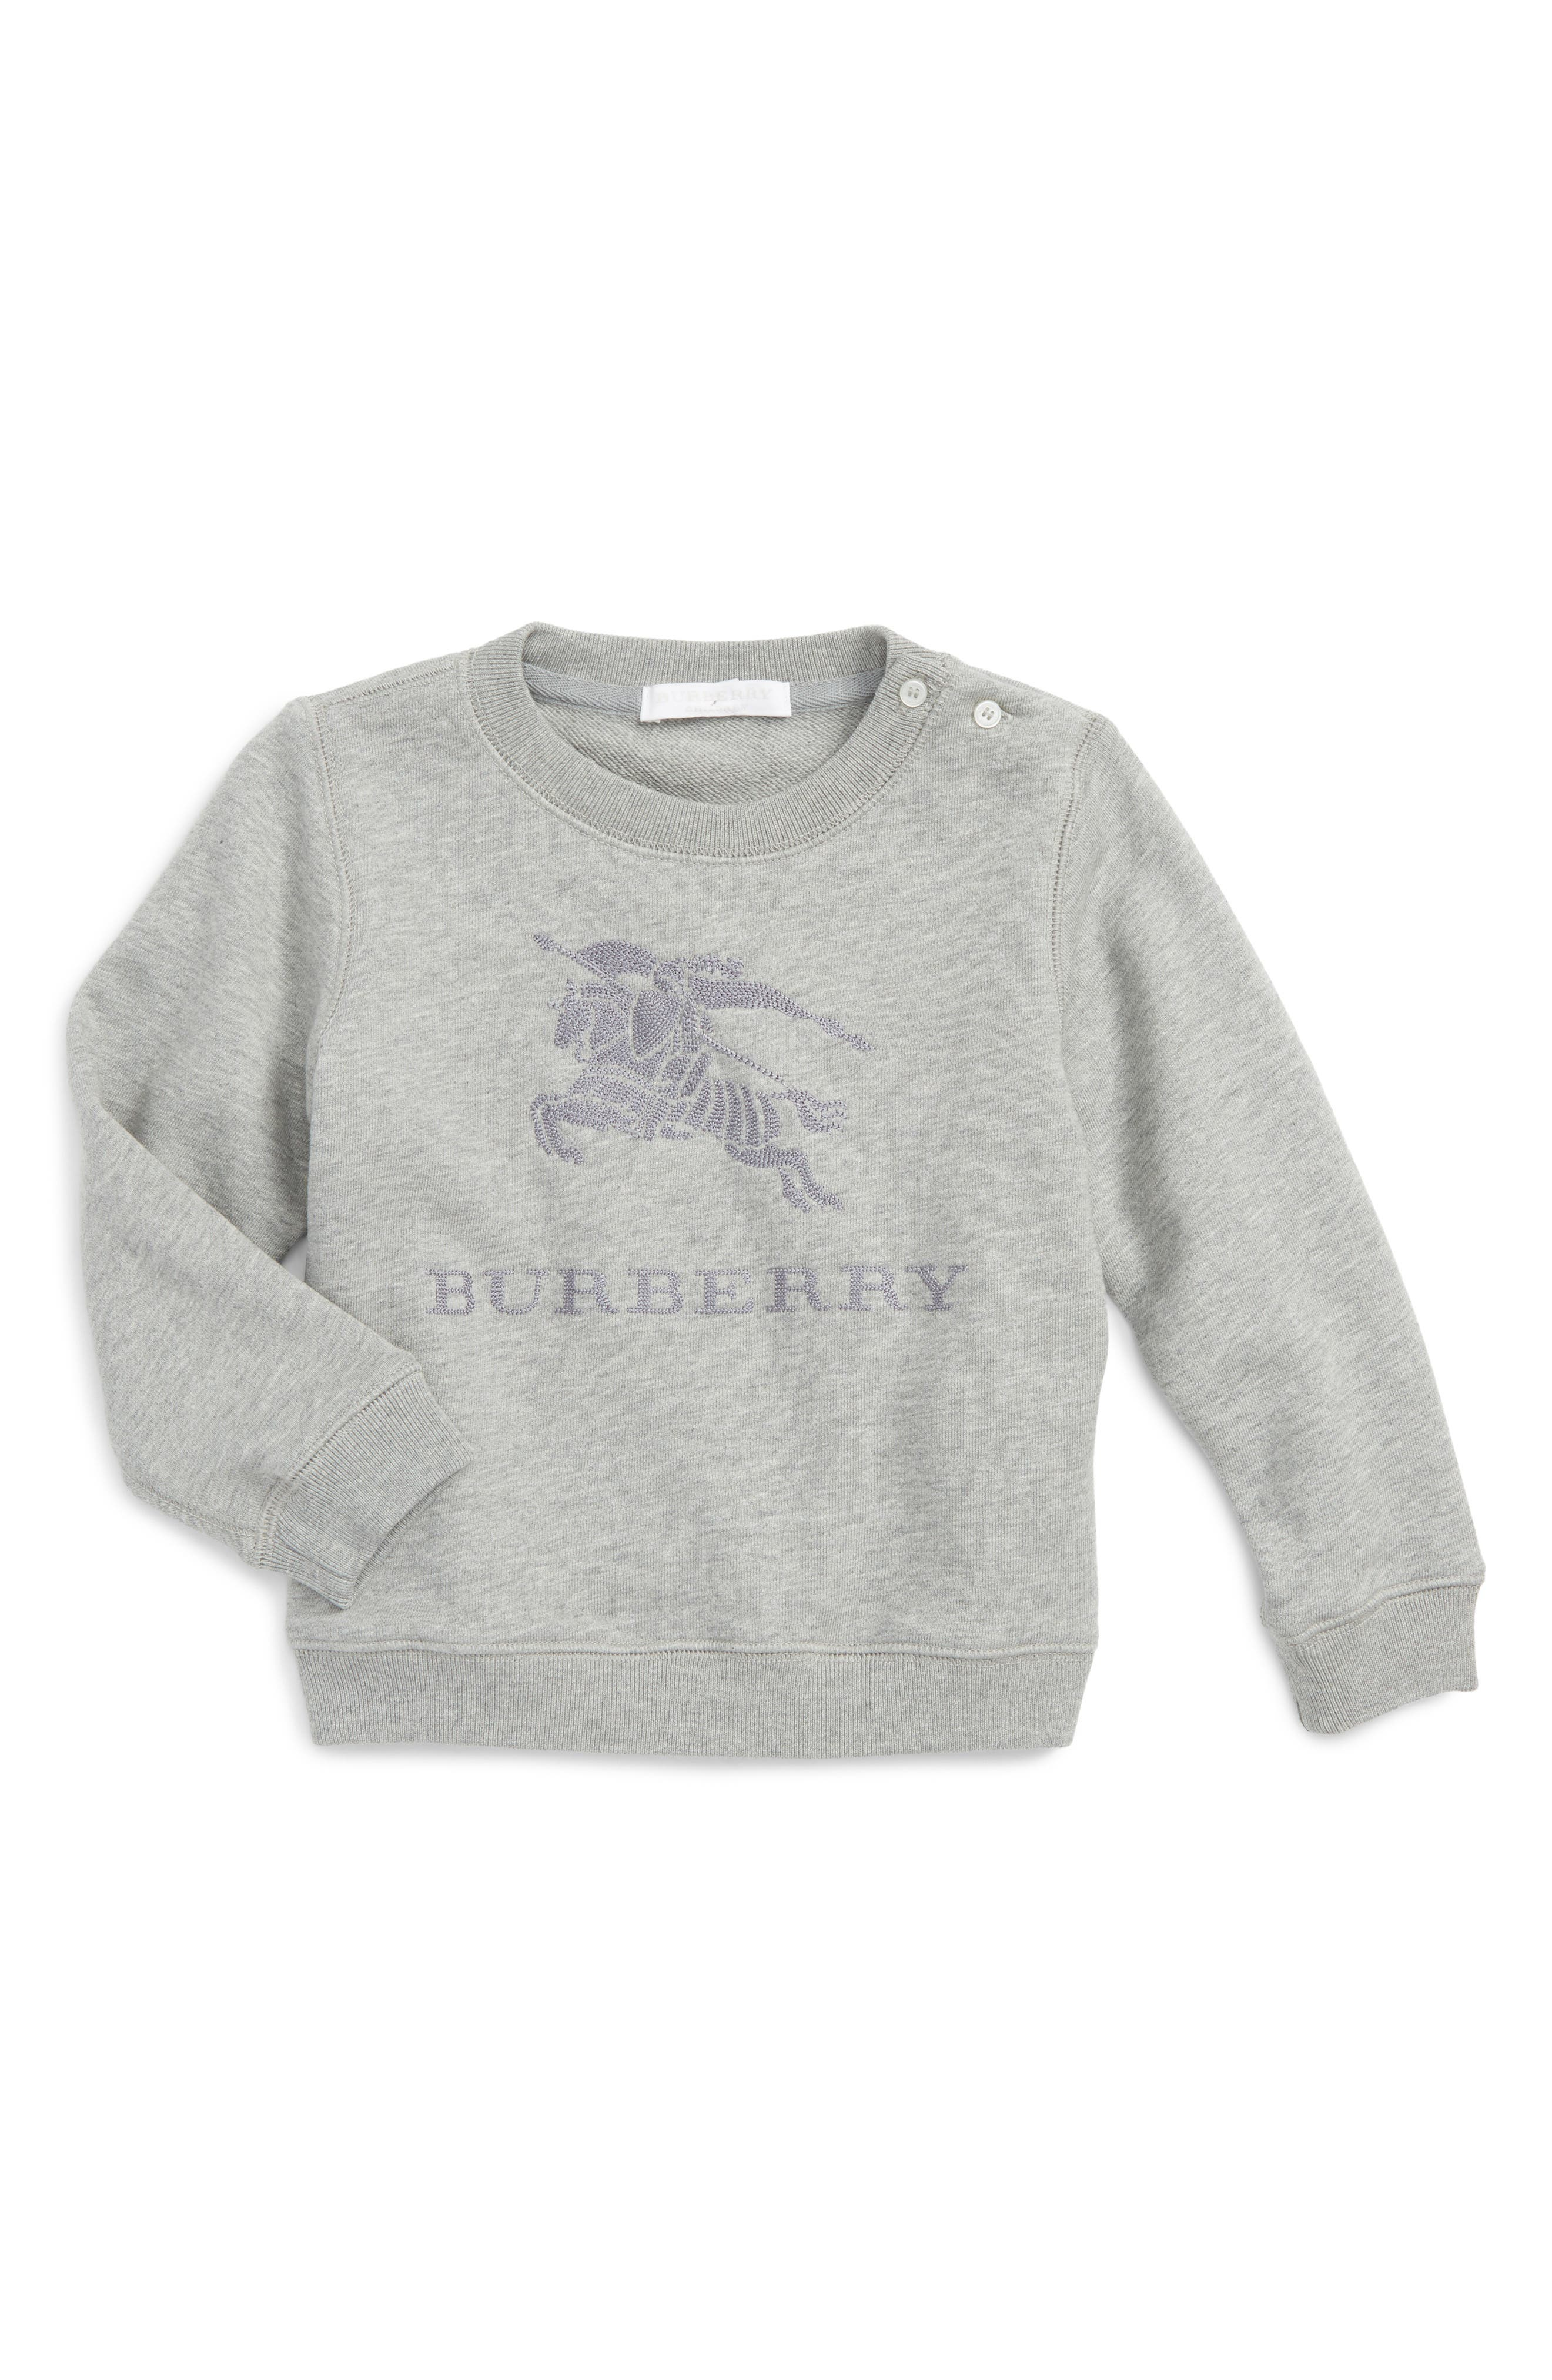 Tom Embroidered Pullover,                         Main,                         color, 035